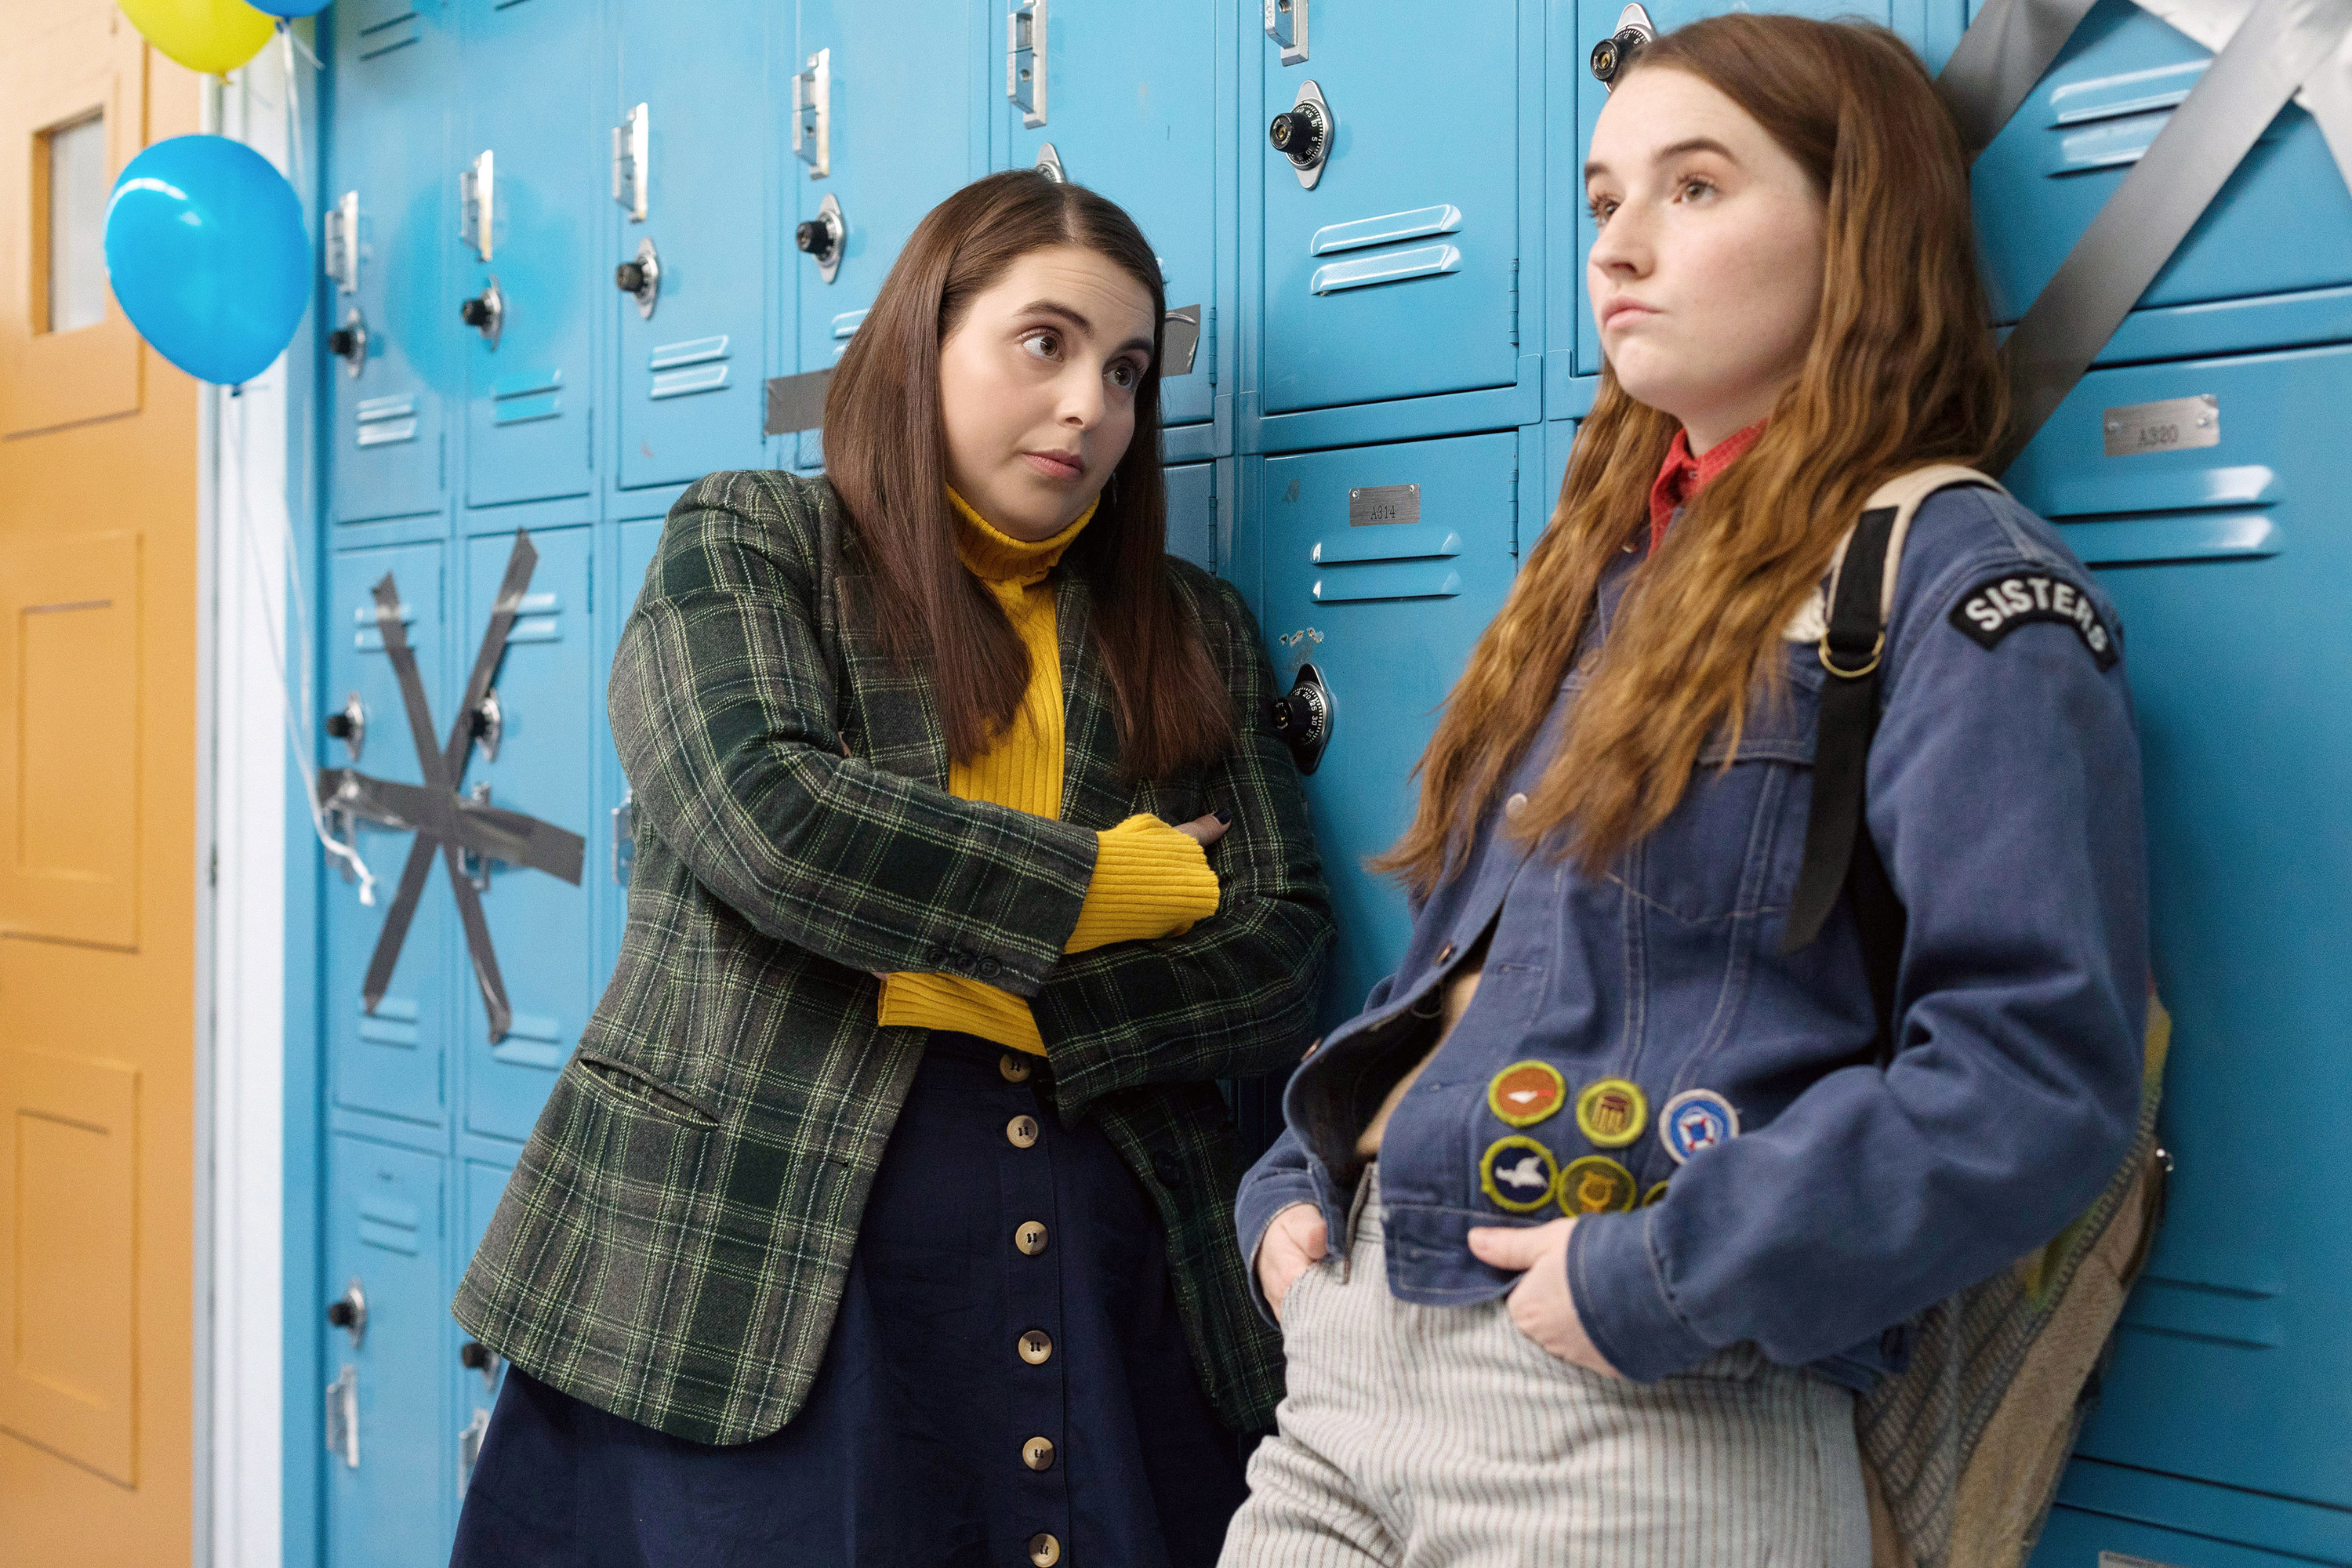 Amy and Molly leaning against lockers